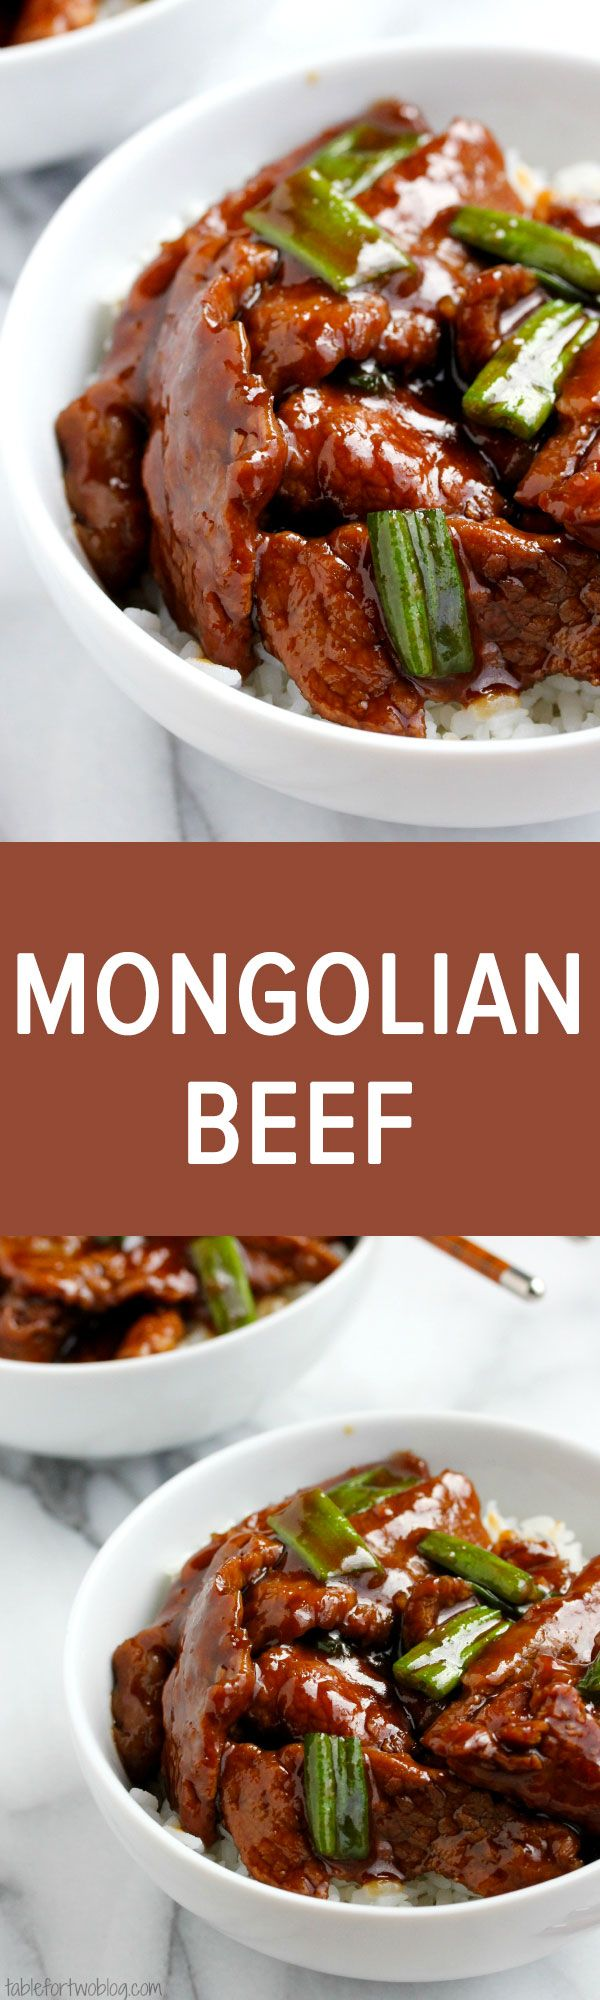 279 best lightened up images on pinterest food asian foods and mongolian beef is easy to make at home forumfinder Image collections